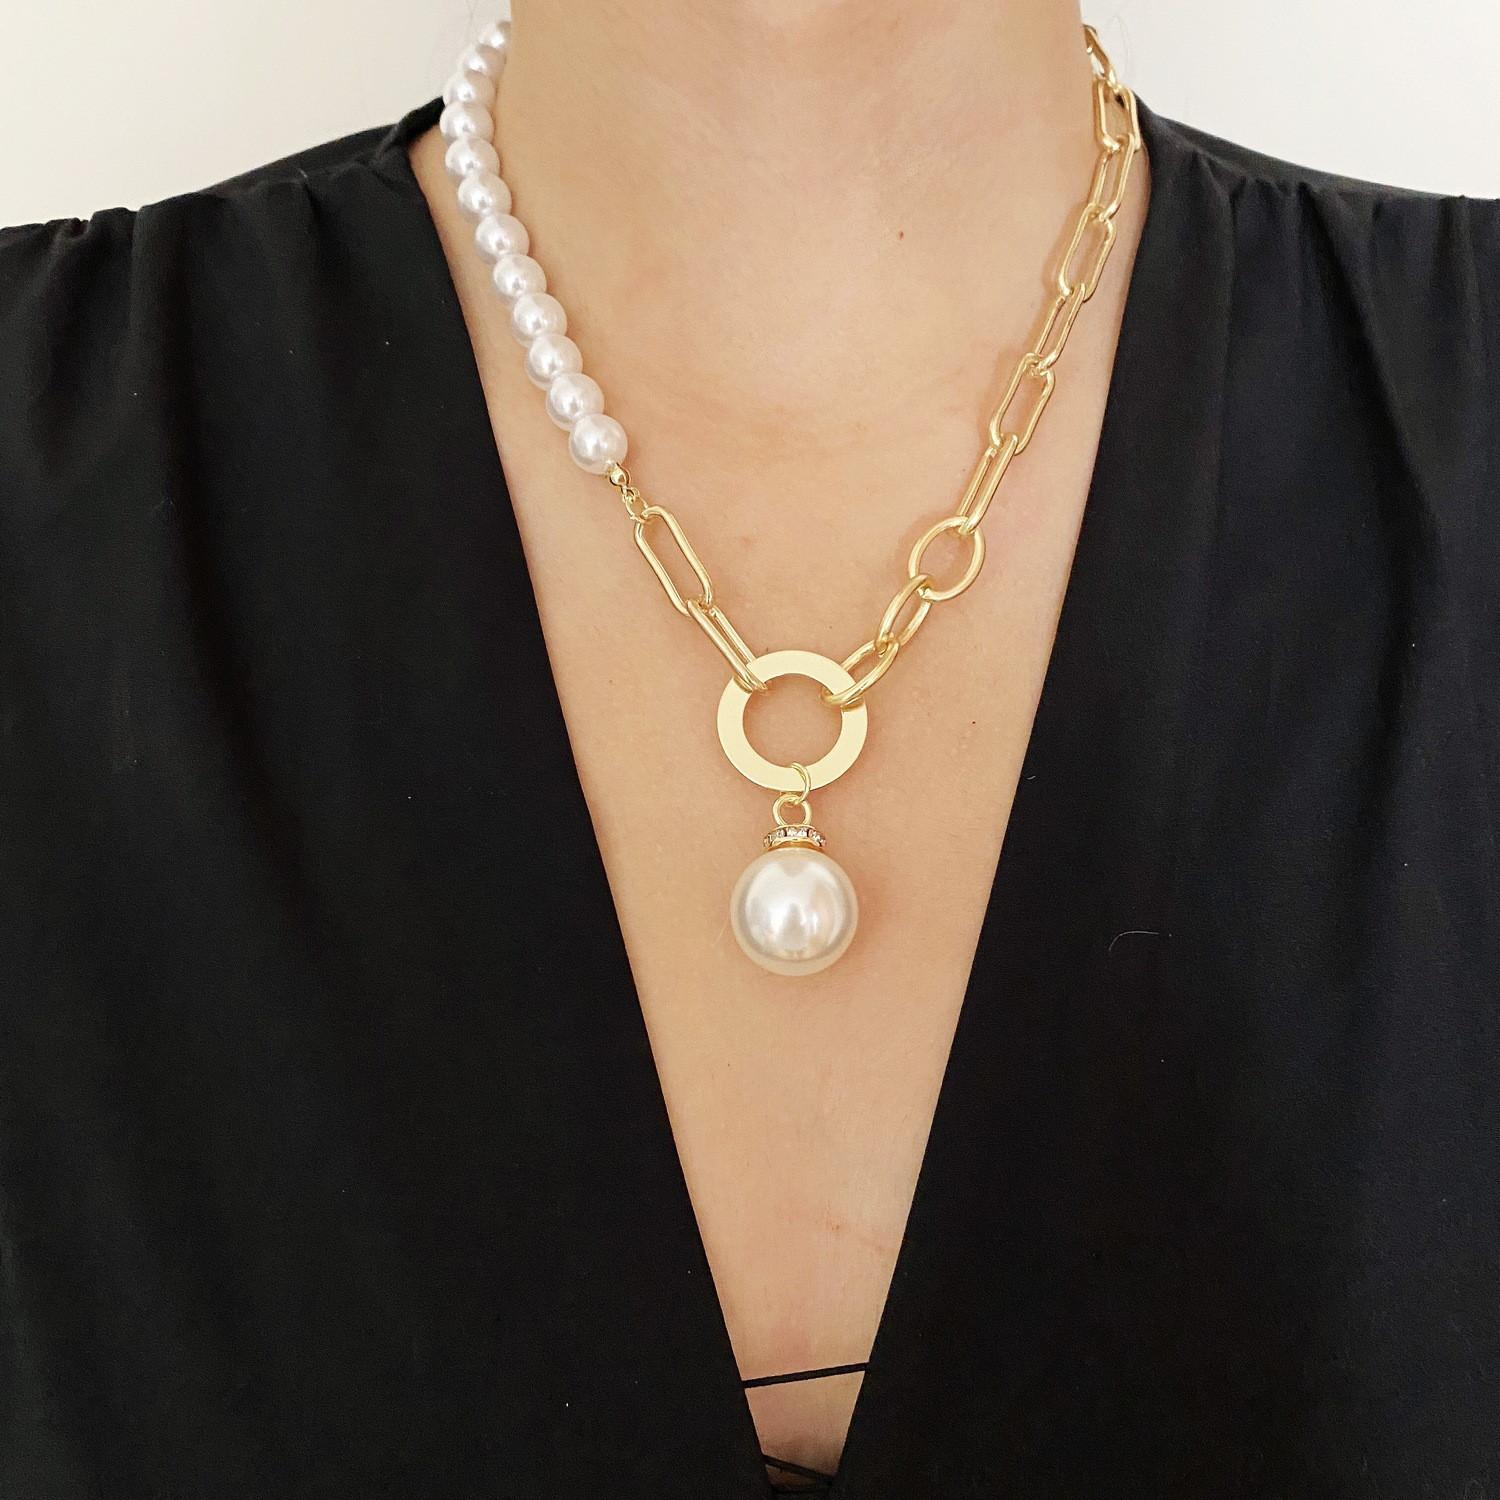 Pearl pendant necklaces chain fashion necklace for woman classic baroque jewelry European American traditional style lady superior quality optional